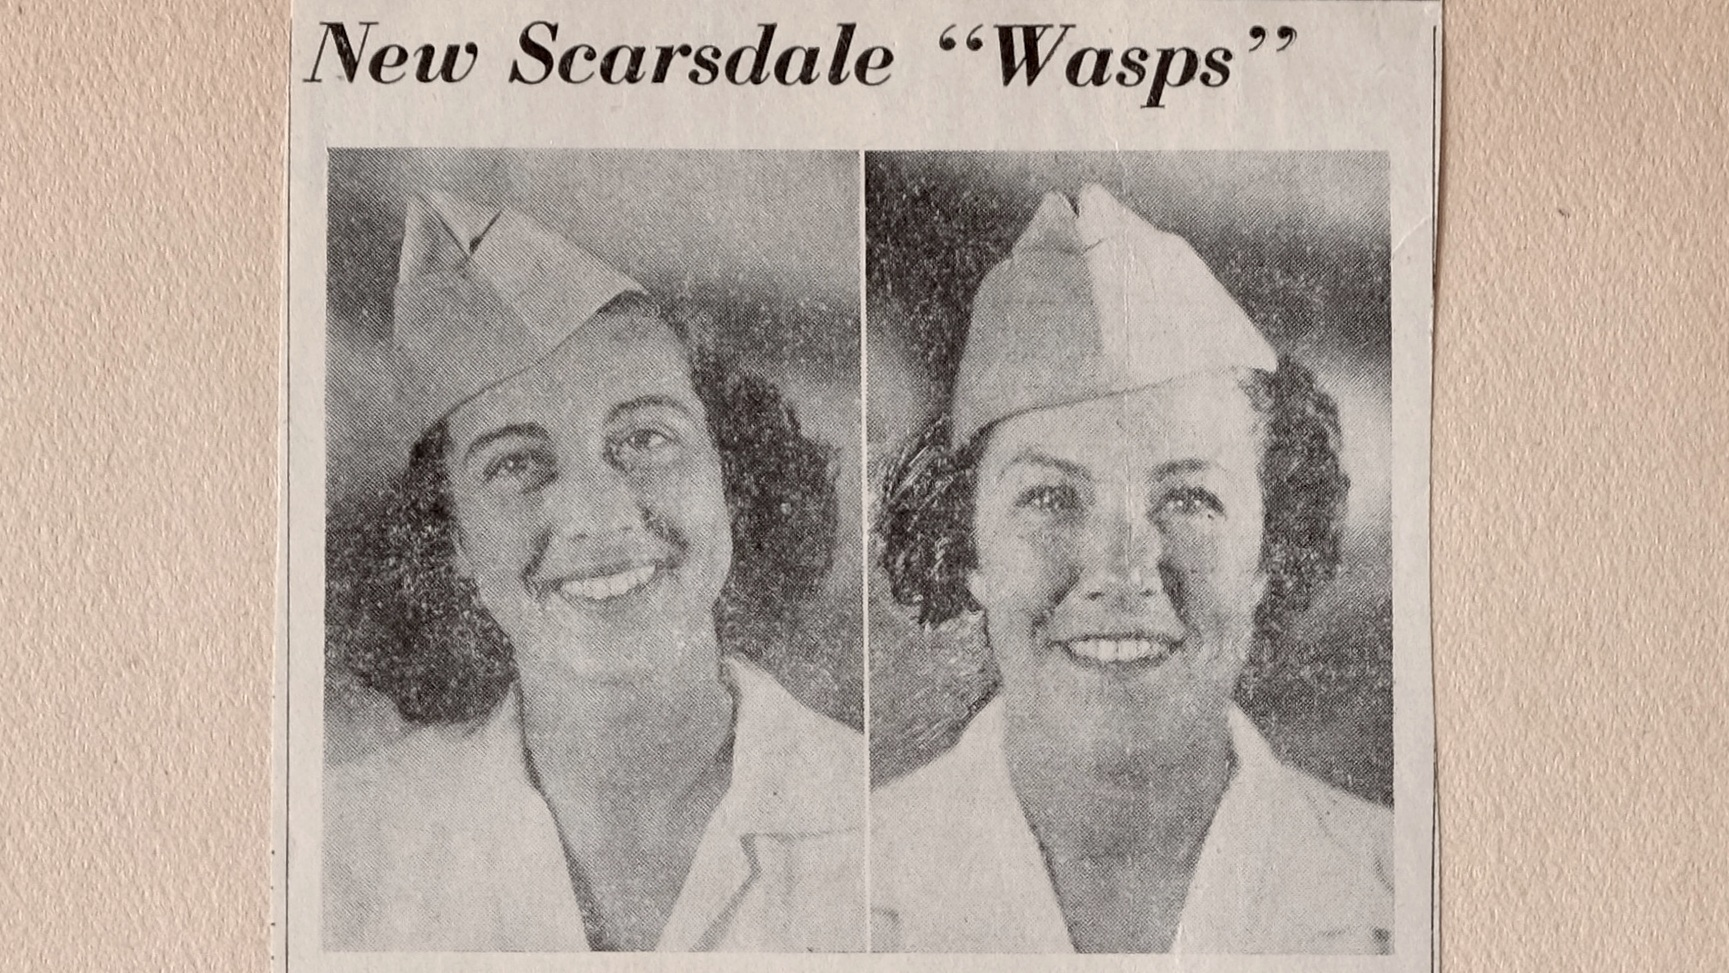 New Scarsdale WASP